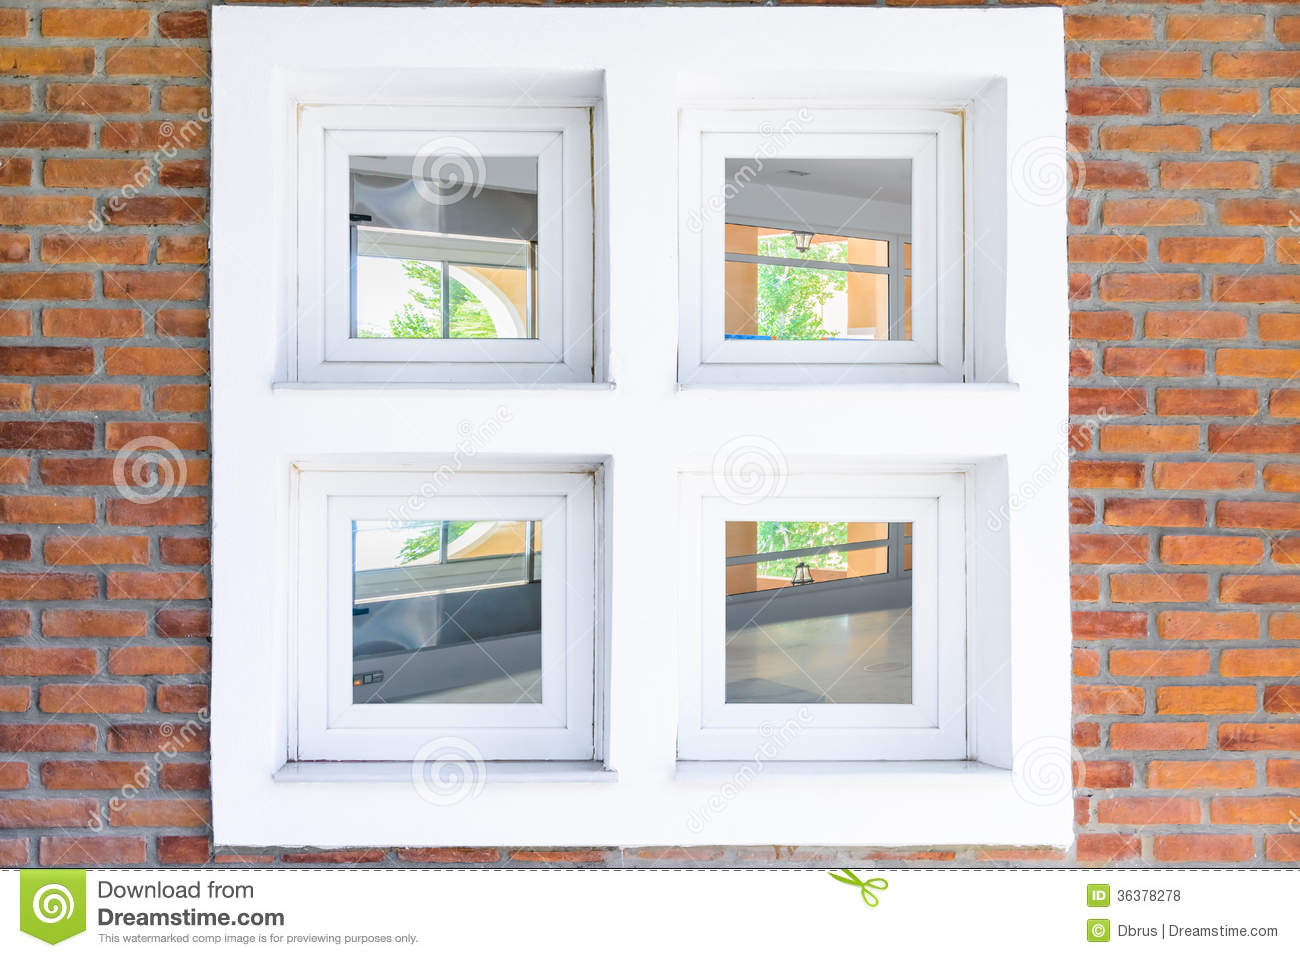 Old Interior Window Walls : Window in brick wall with view inside the interior royalty